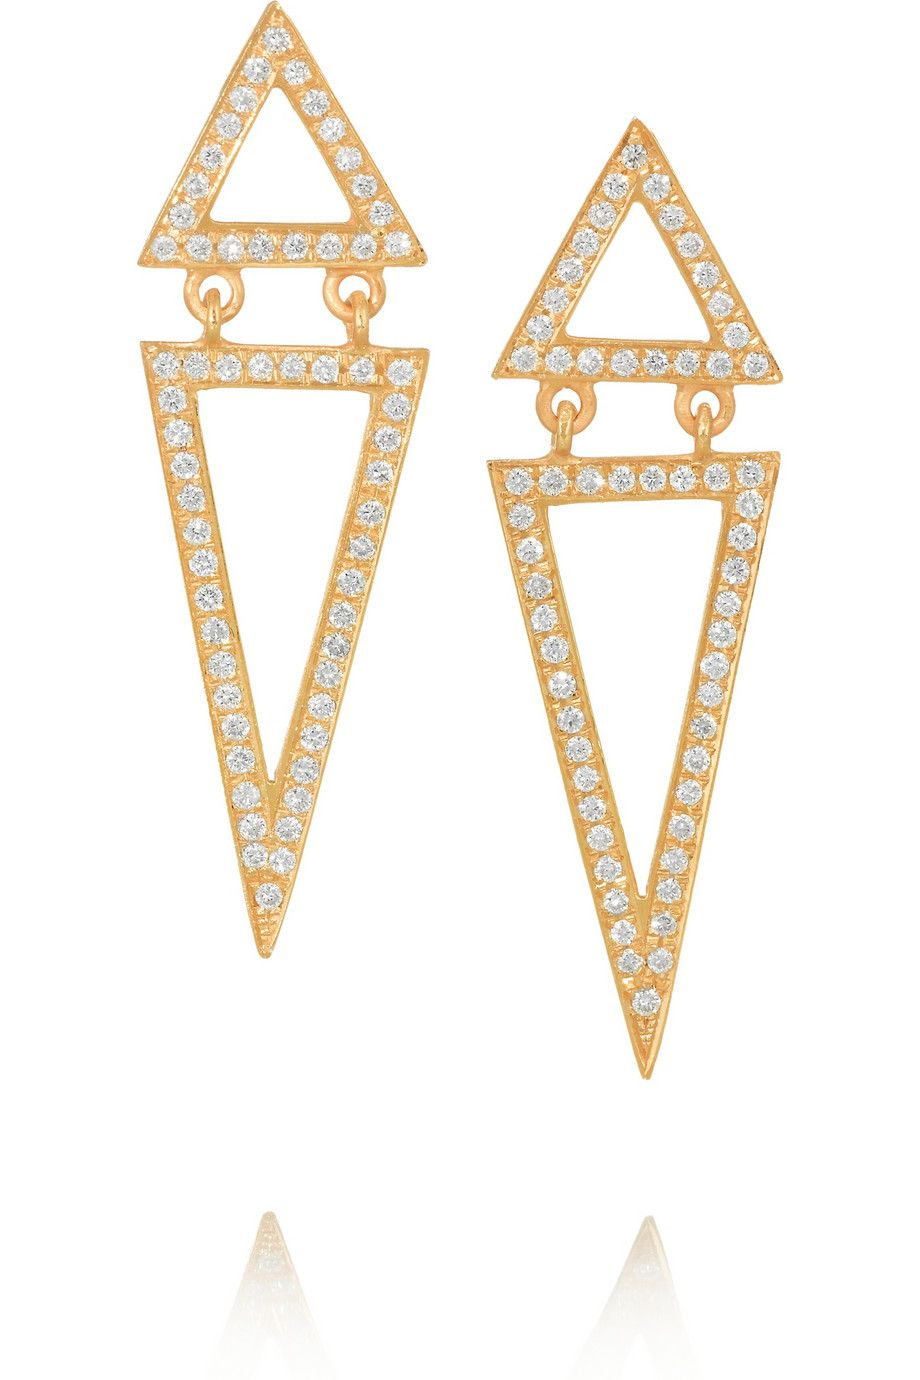 Halleh | 18-karat gold diamond triangle earrings | NET-A-PORTER.COM